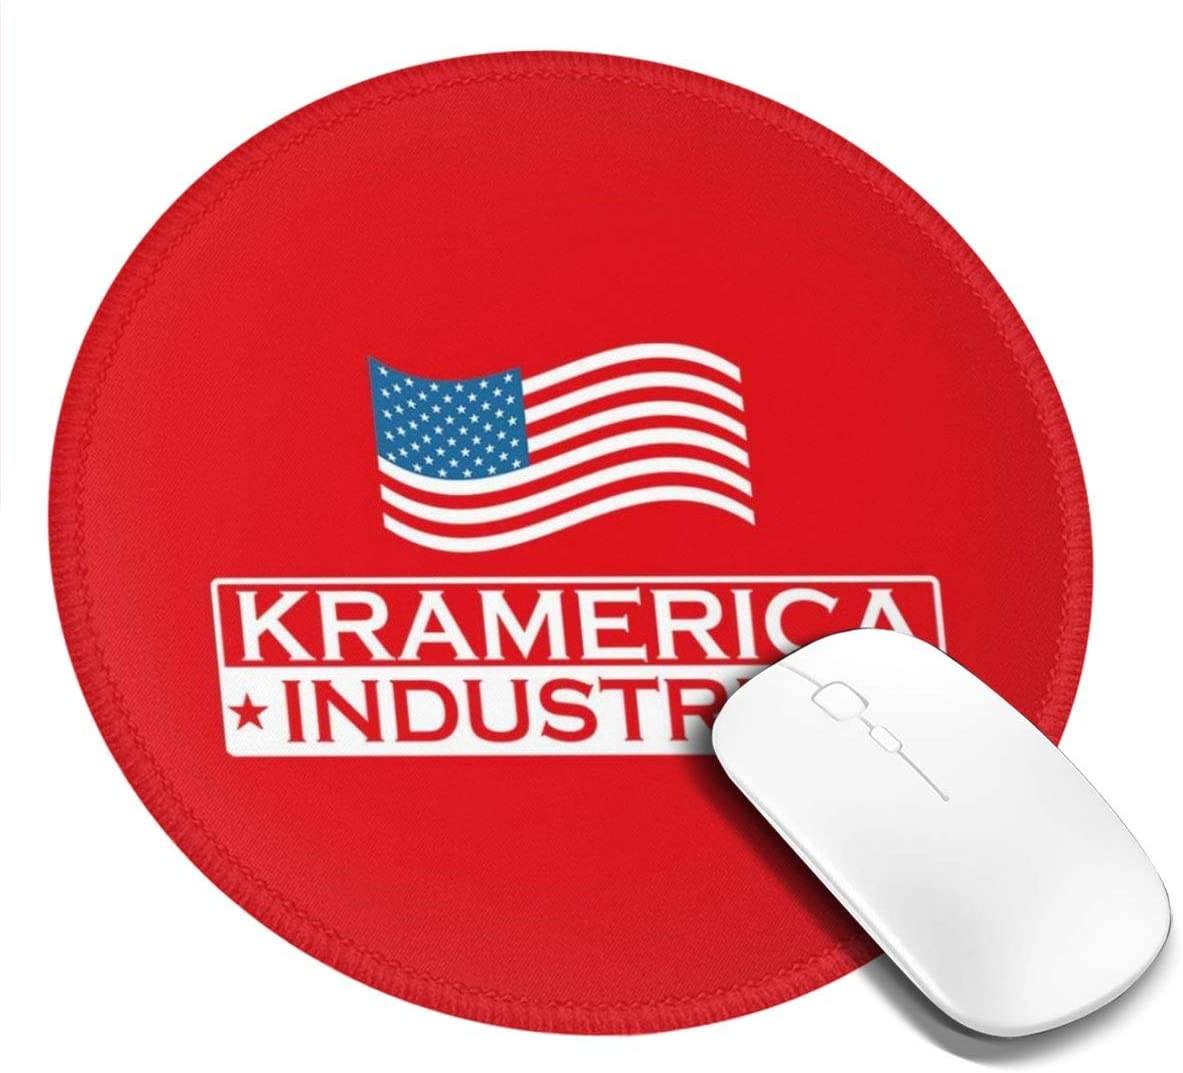 Seinfeld Kramerica Industries, Trucker Cap Customized Designs Non-Slip Rubber Base Gaming Mouse Pads for Mac,7.9x7.9 in, Pc, Computers. Ideal for Working Or Game